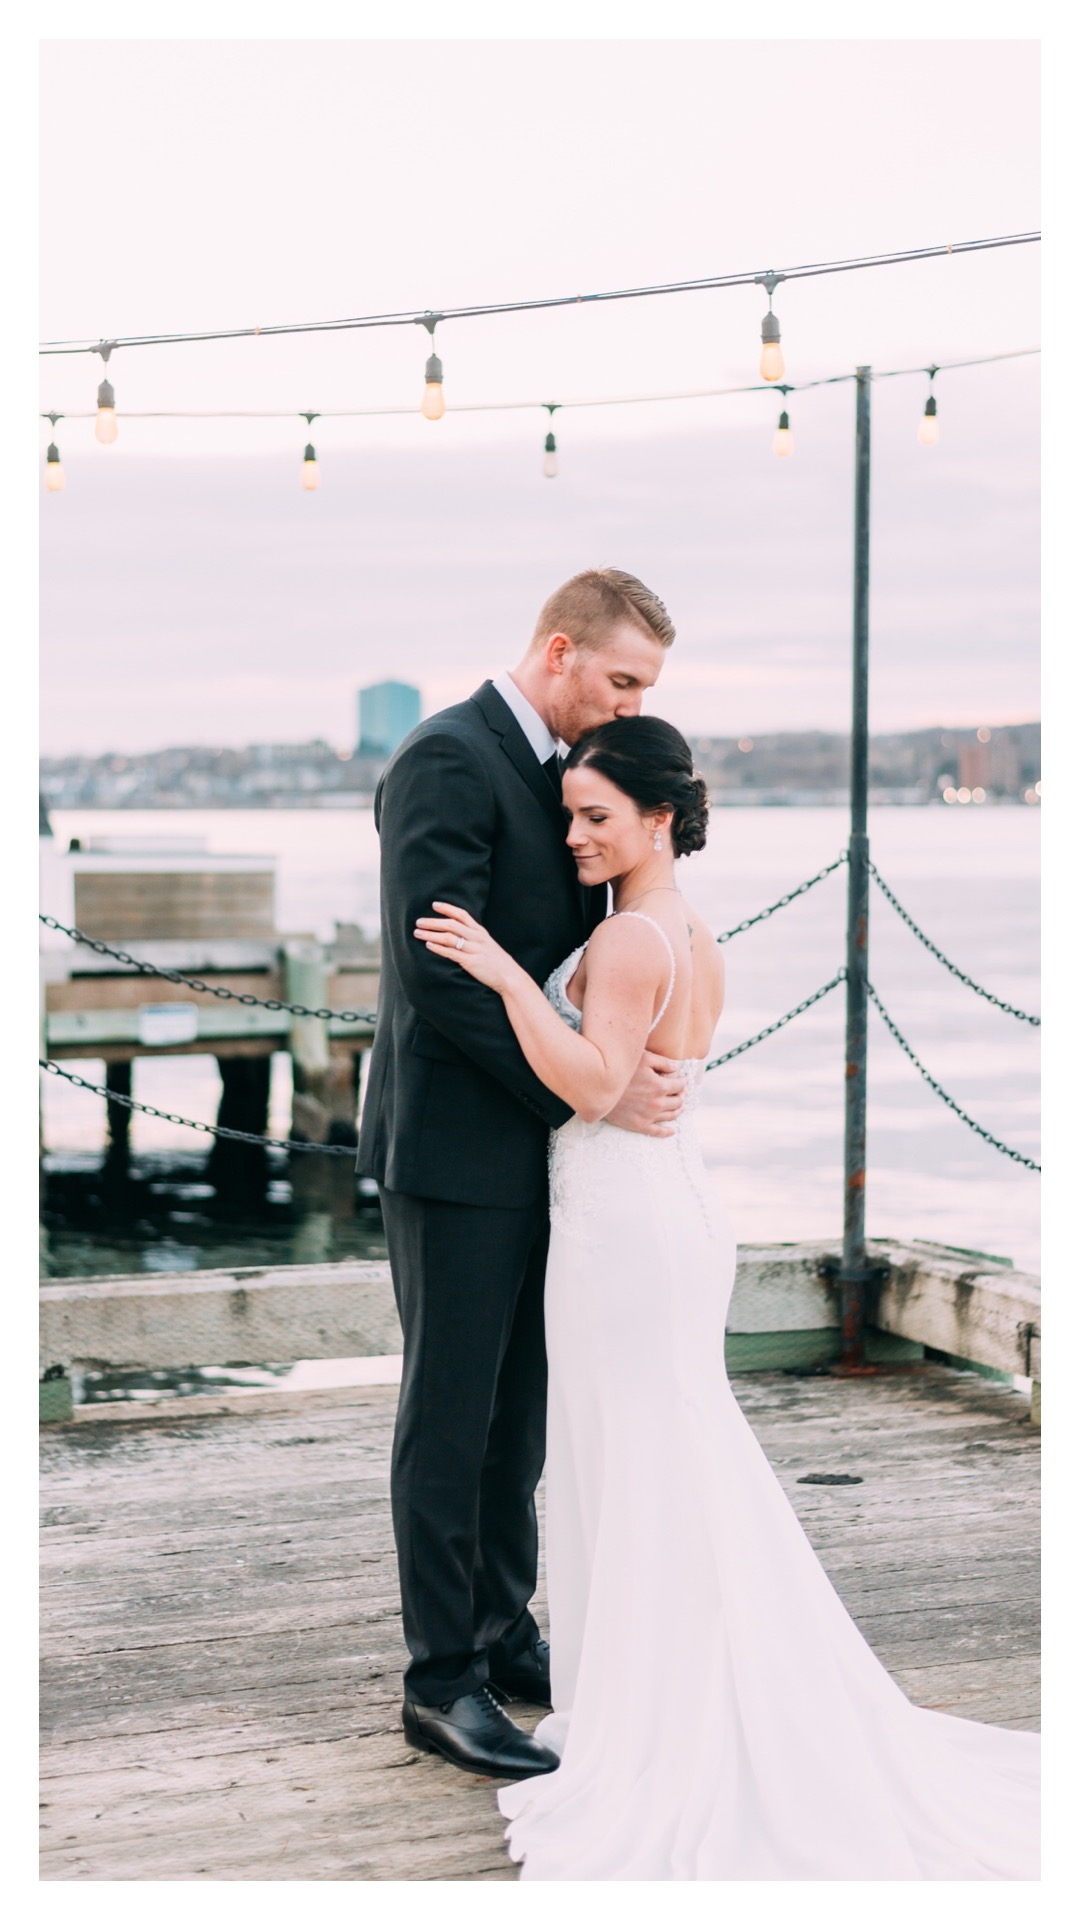 A Rainy Day Halifax Elopement | Halifax Wedding Photographer